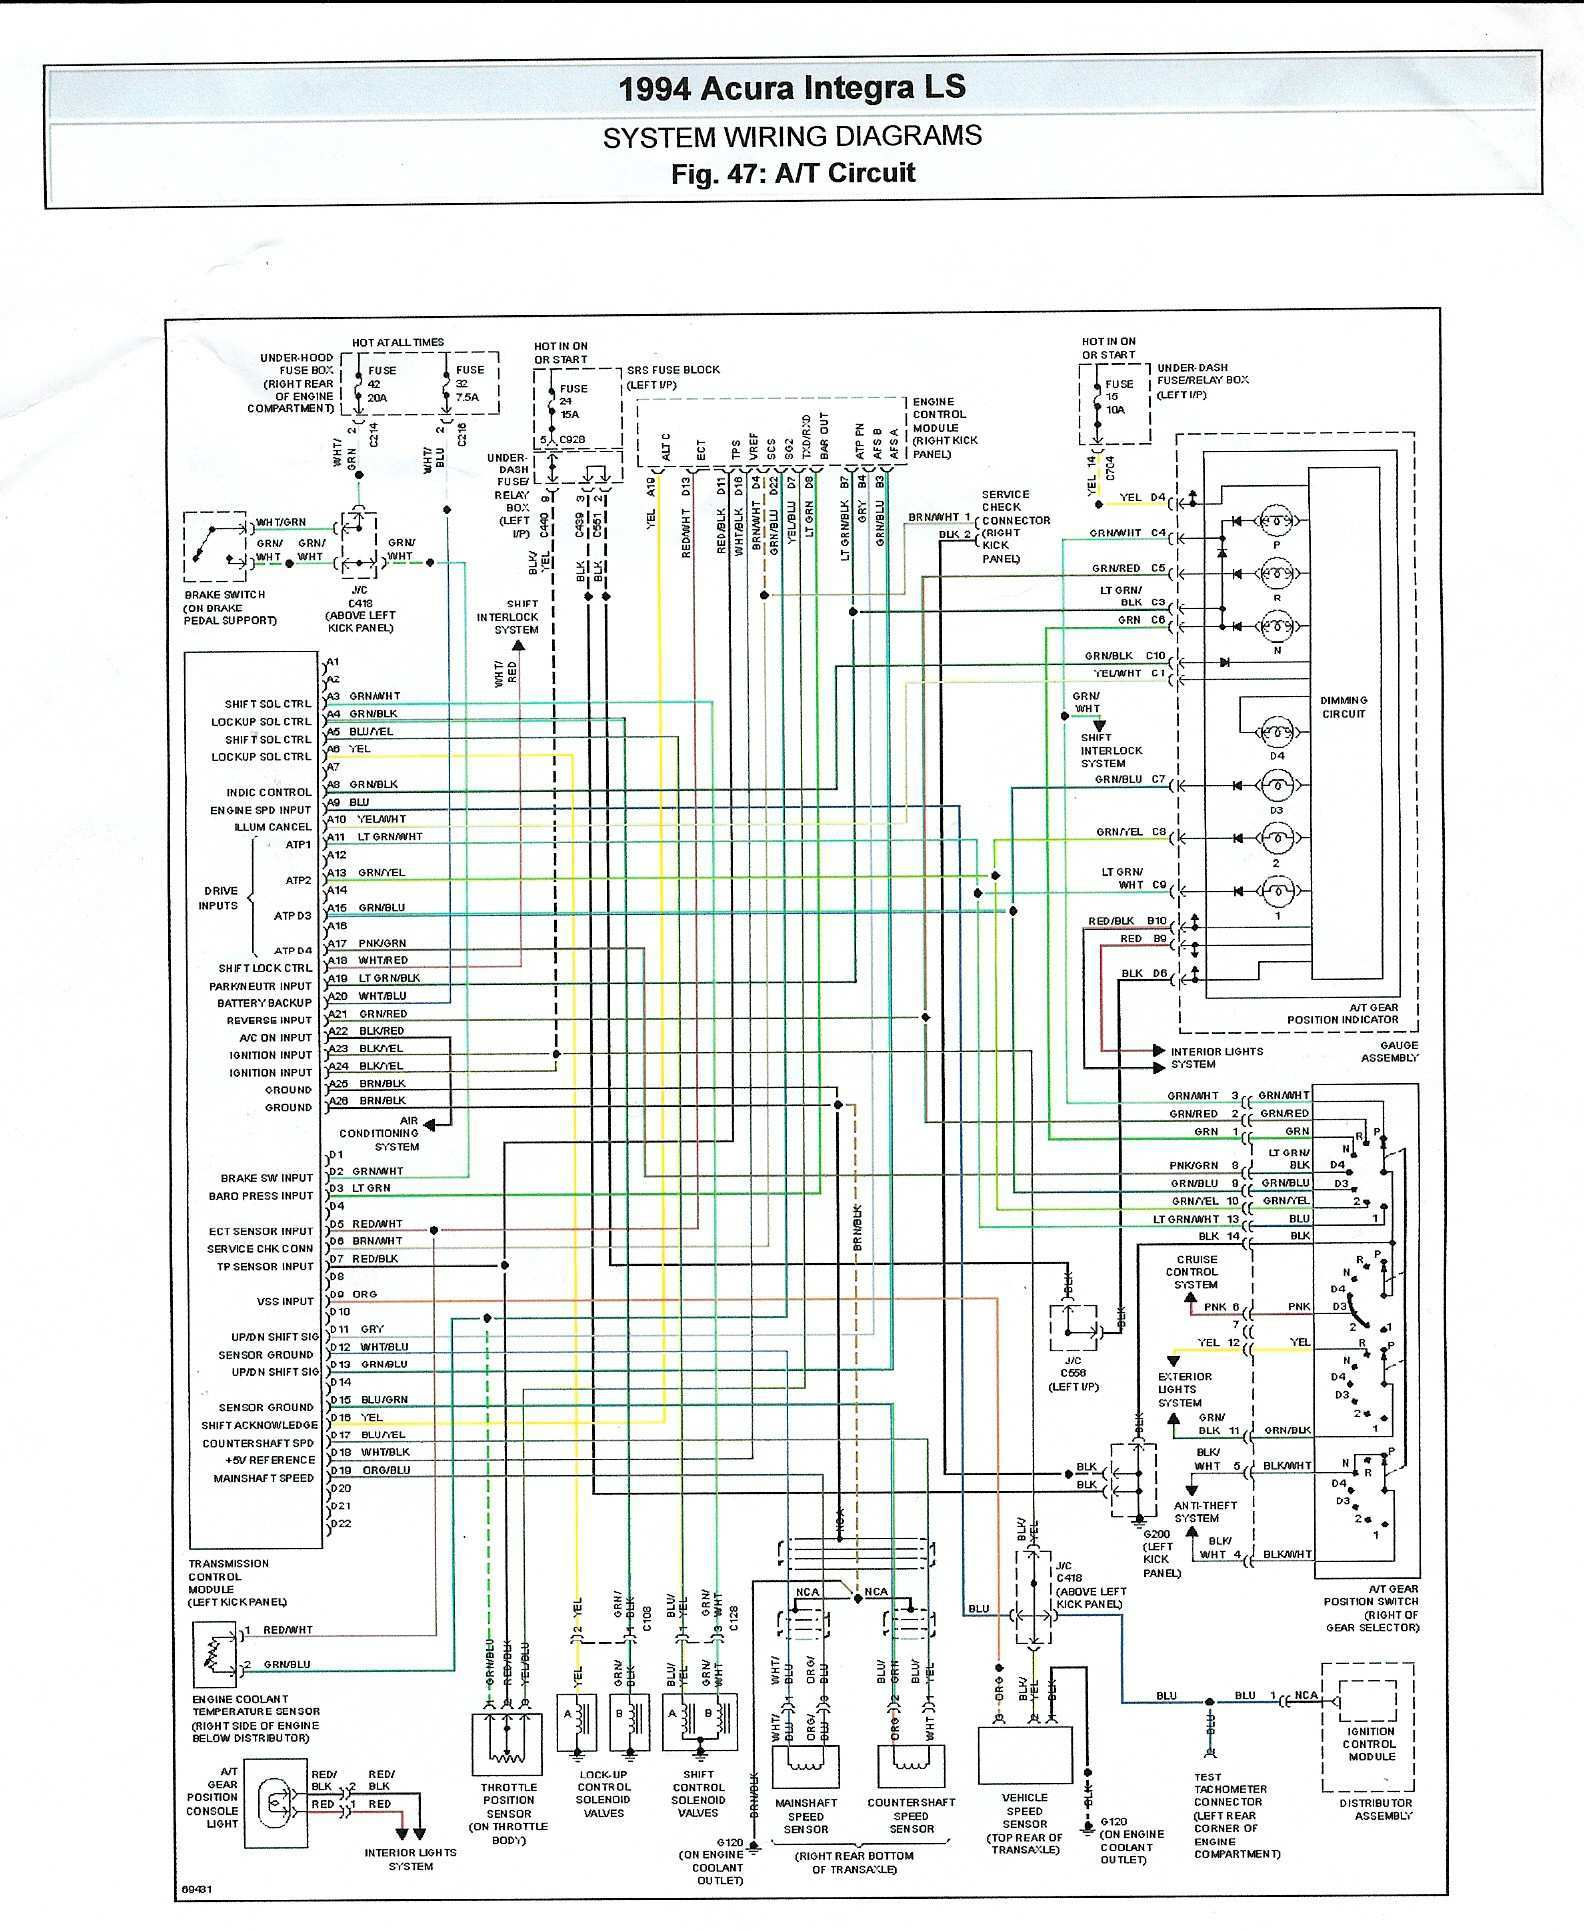 Honda Civic Wiring Diagram Moreover Honda Accord Wiring Diagram